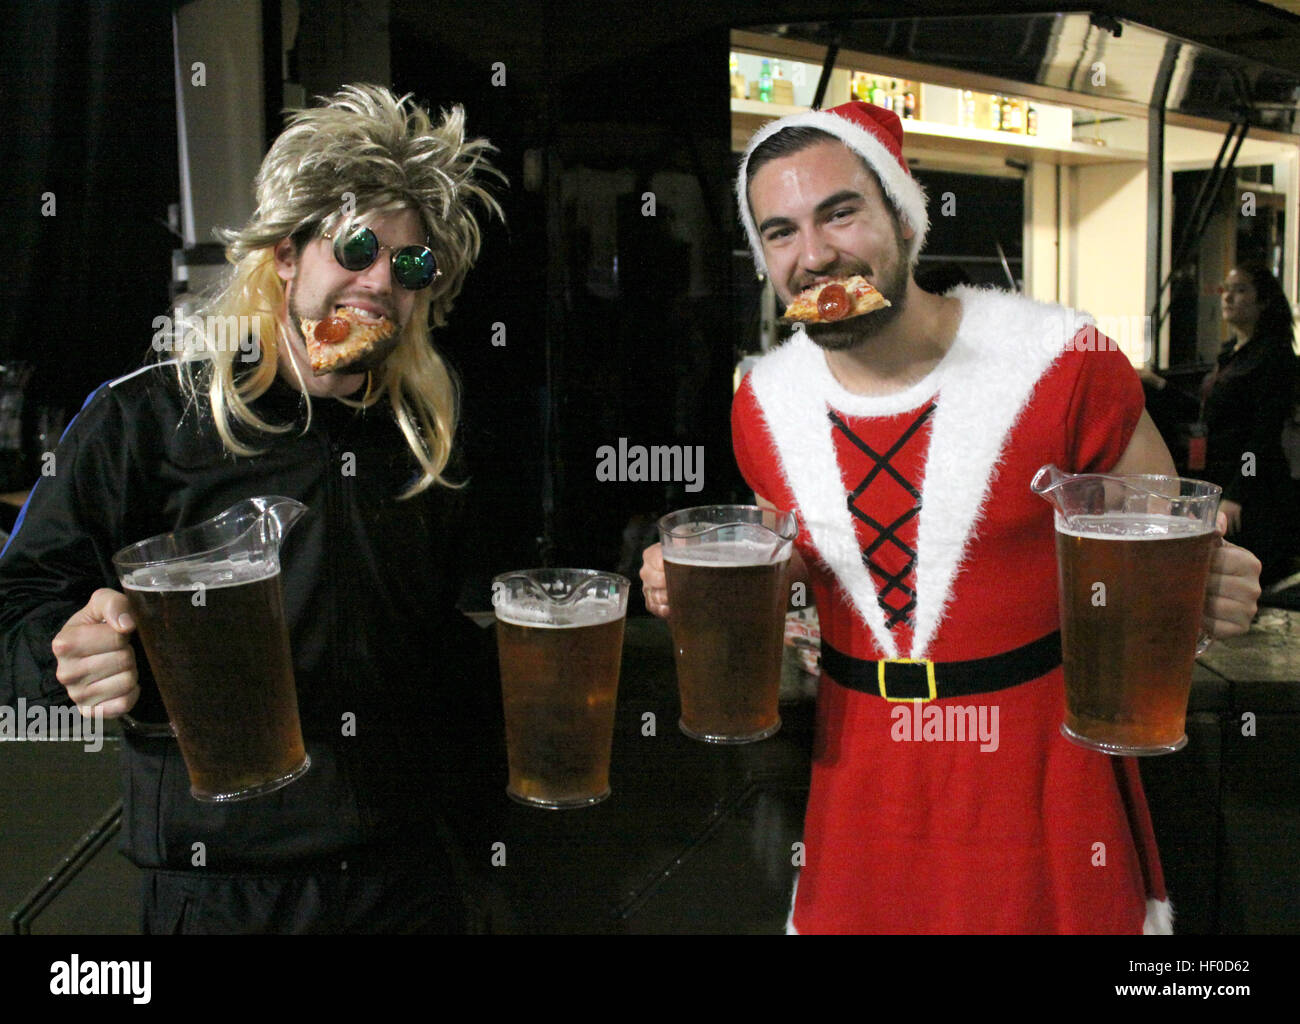 Dressed-up darts fans with giant beer mugs enjoying themselves at Alexandra Palace in London United Kingdom 16 December 2016. Every year in December ...  sc 1 st  Alamy & London UK. 16th Dec 2016. Dressed-up darts fans with giant beer ...